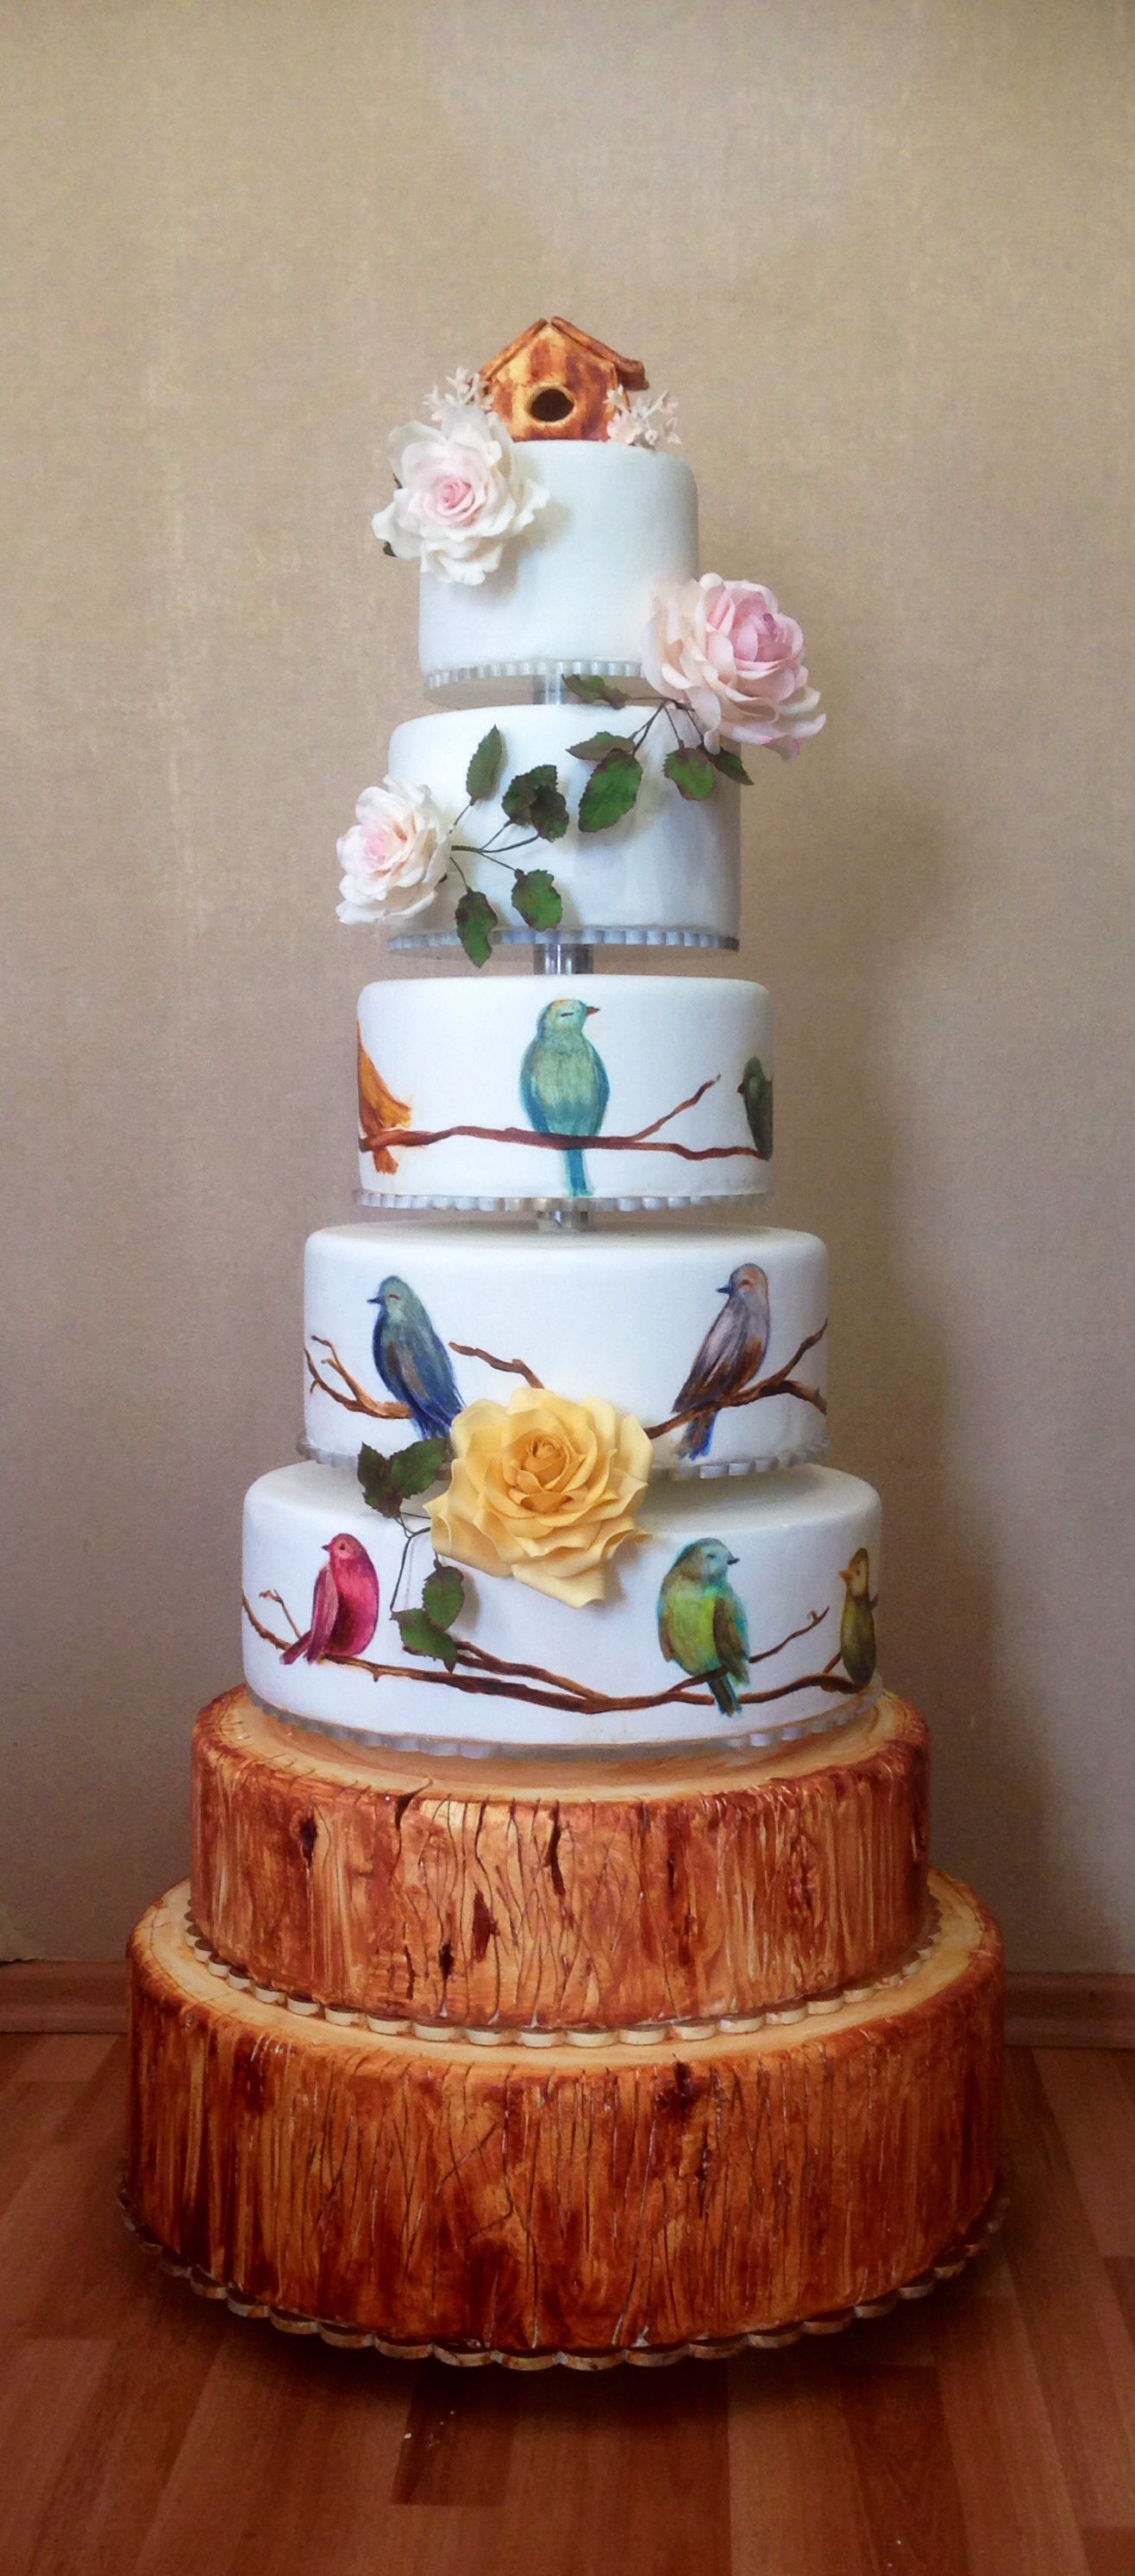 Birds Wedding Show Cake Edible Art Cake Painting Pasta Boyama